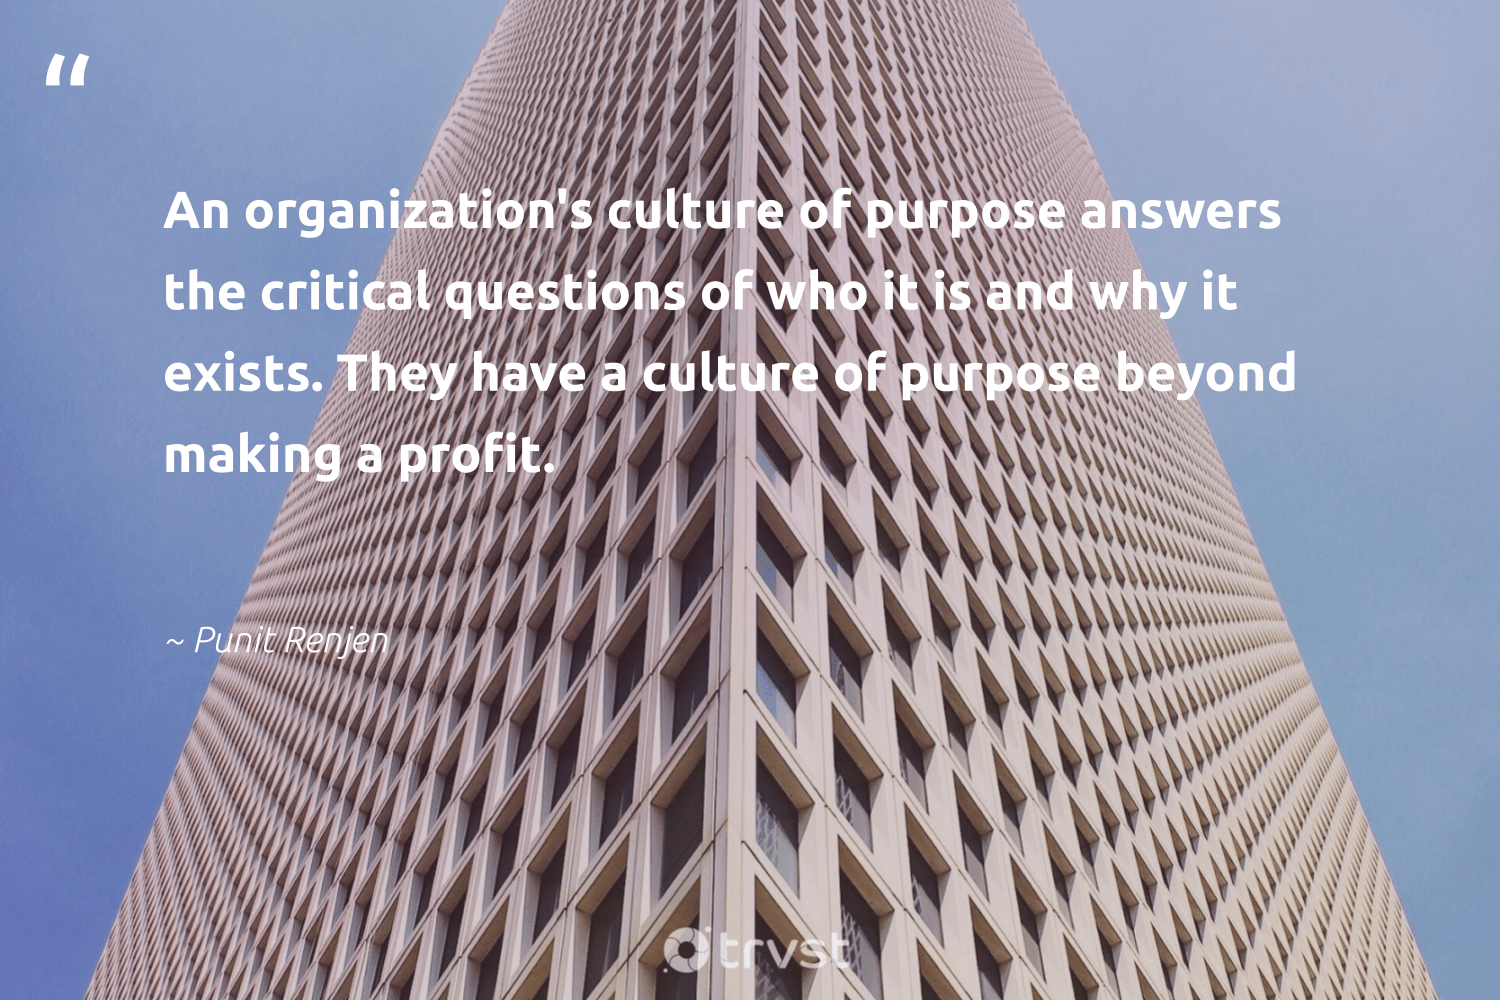 """""""An organization's culture of purpose answers the critical questions of who it is and why it exists. They have a culture of purpose beyond making a profit.""""  - Punit Renjen #trvst #quotes #purpose #findpurpose #dogood #togetherwecan #planetearthfirst #findingpupose #giveback #nevergiveup #gogreen #purposedriven"""